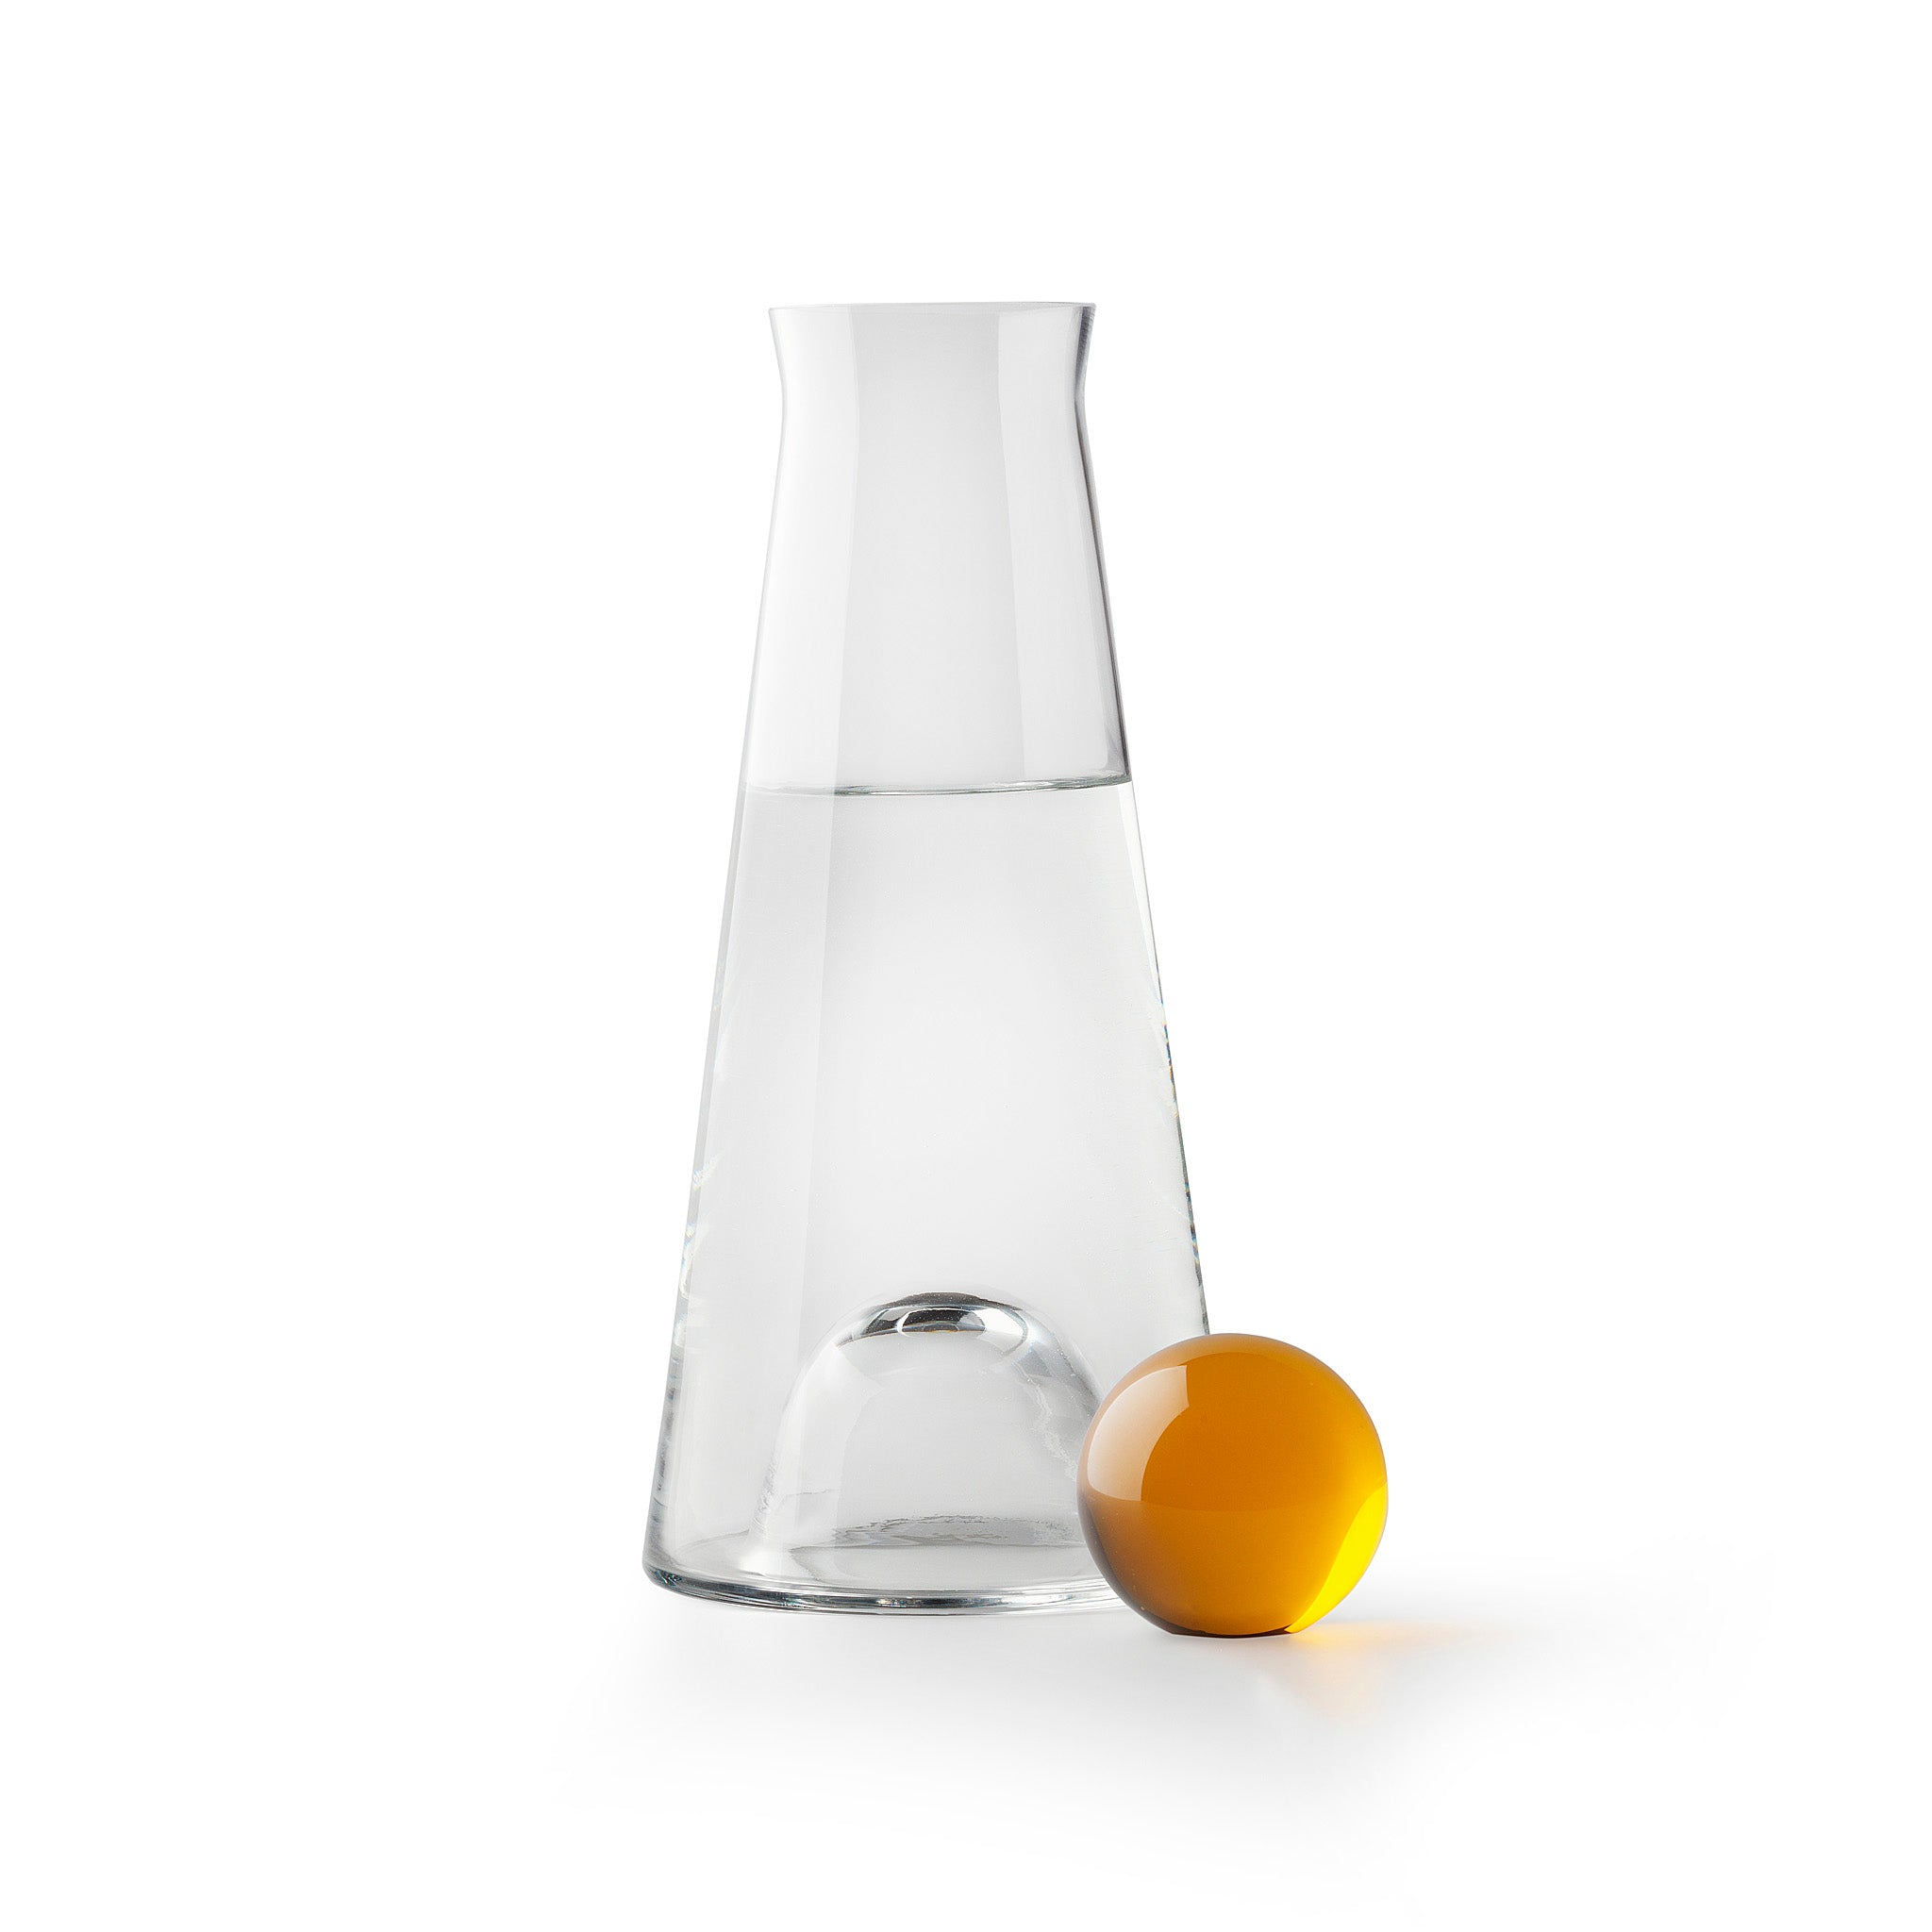 Fia Carafe by Nina Jobs for Design House Stockholm. Wine. Water. Oil. Vinegar. Indispensable on any table, and always in need of a proper presentation. Preferably made in glassware.